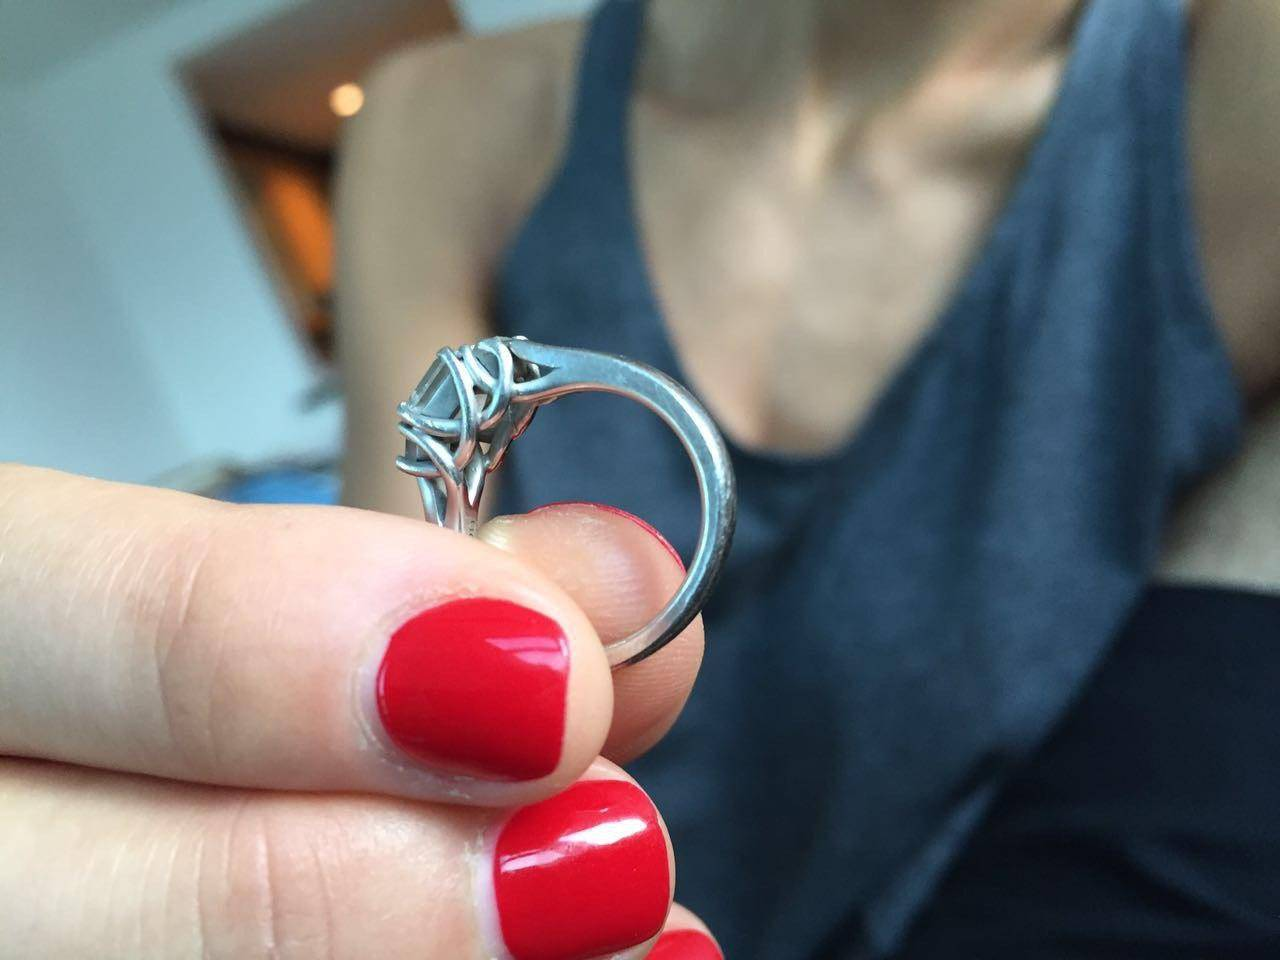 Constantin`s fiancée's engagement ring